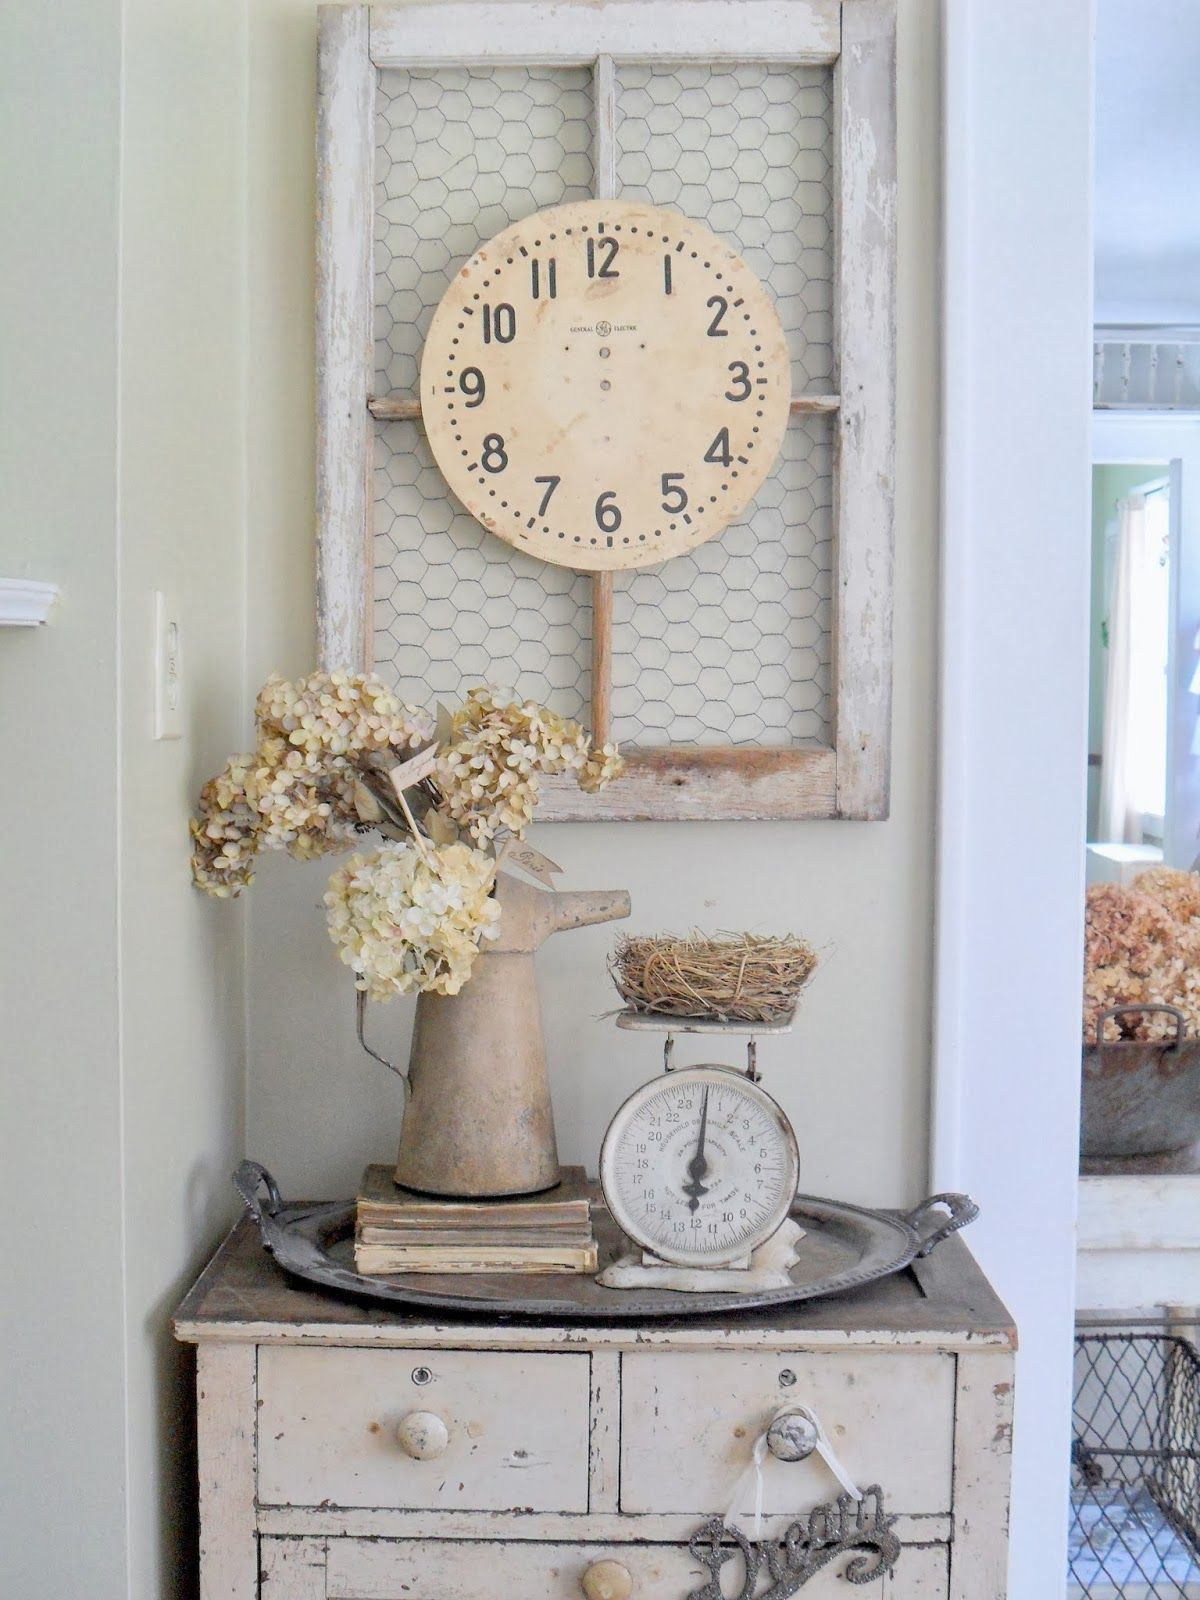 Chicken wire in a window frame....must love junk | Home Inspiration ...